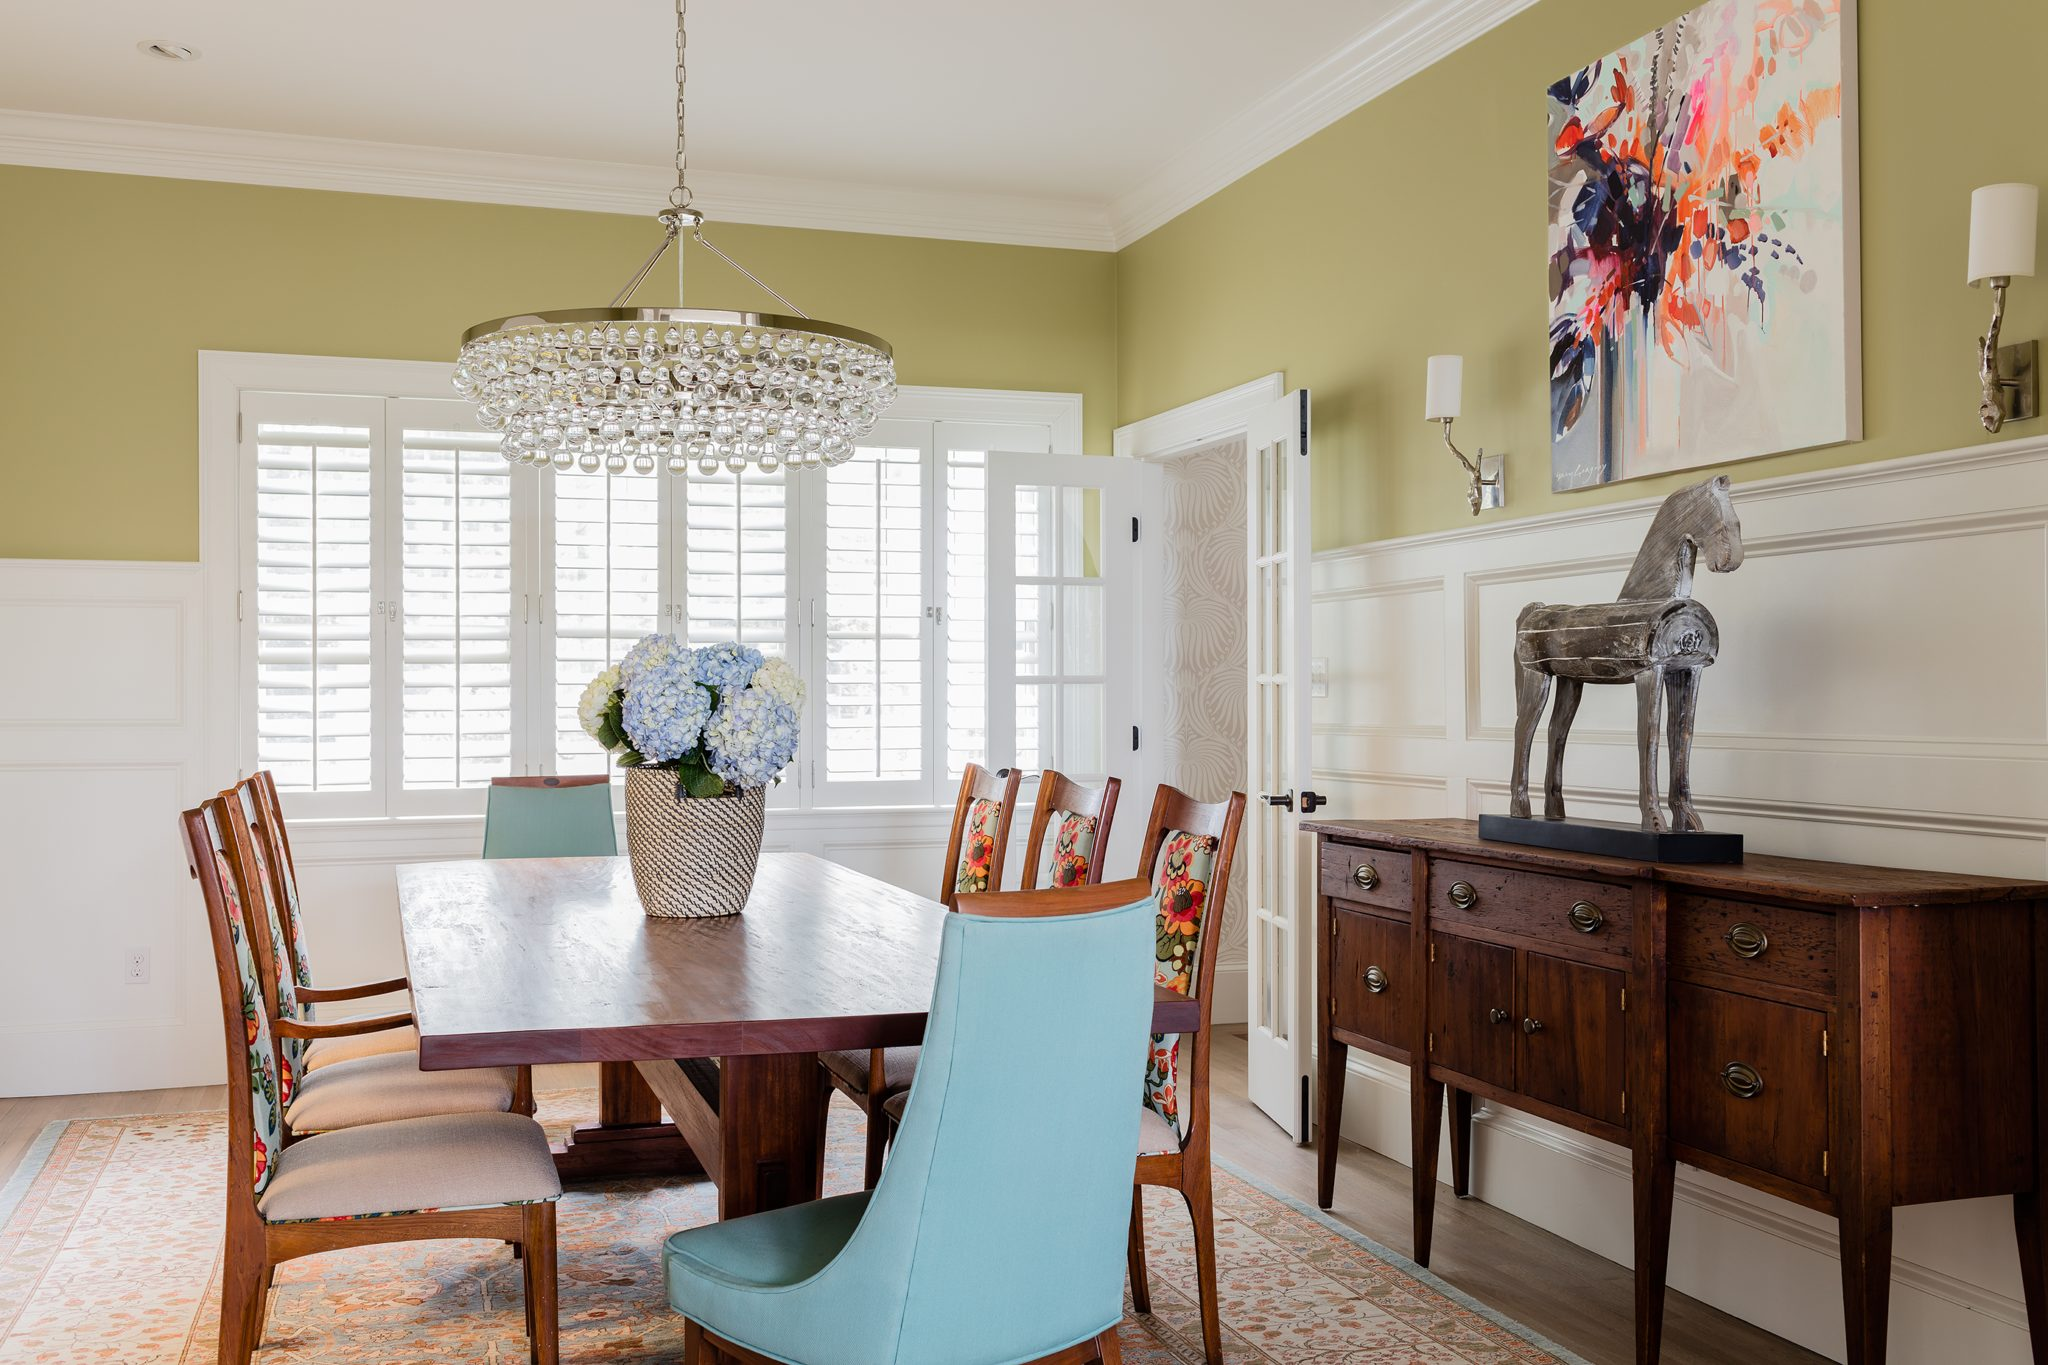 Bold color and high white paneling update a traditional dining room by Kathy Marshall Design